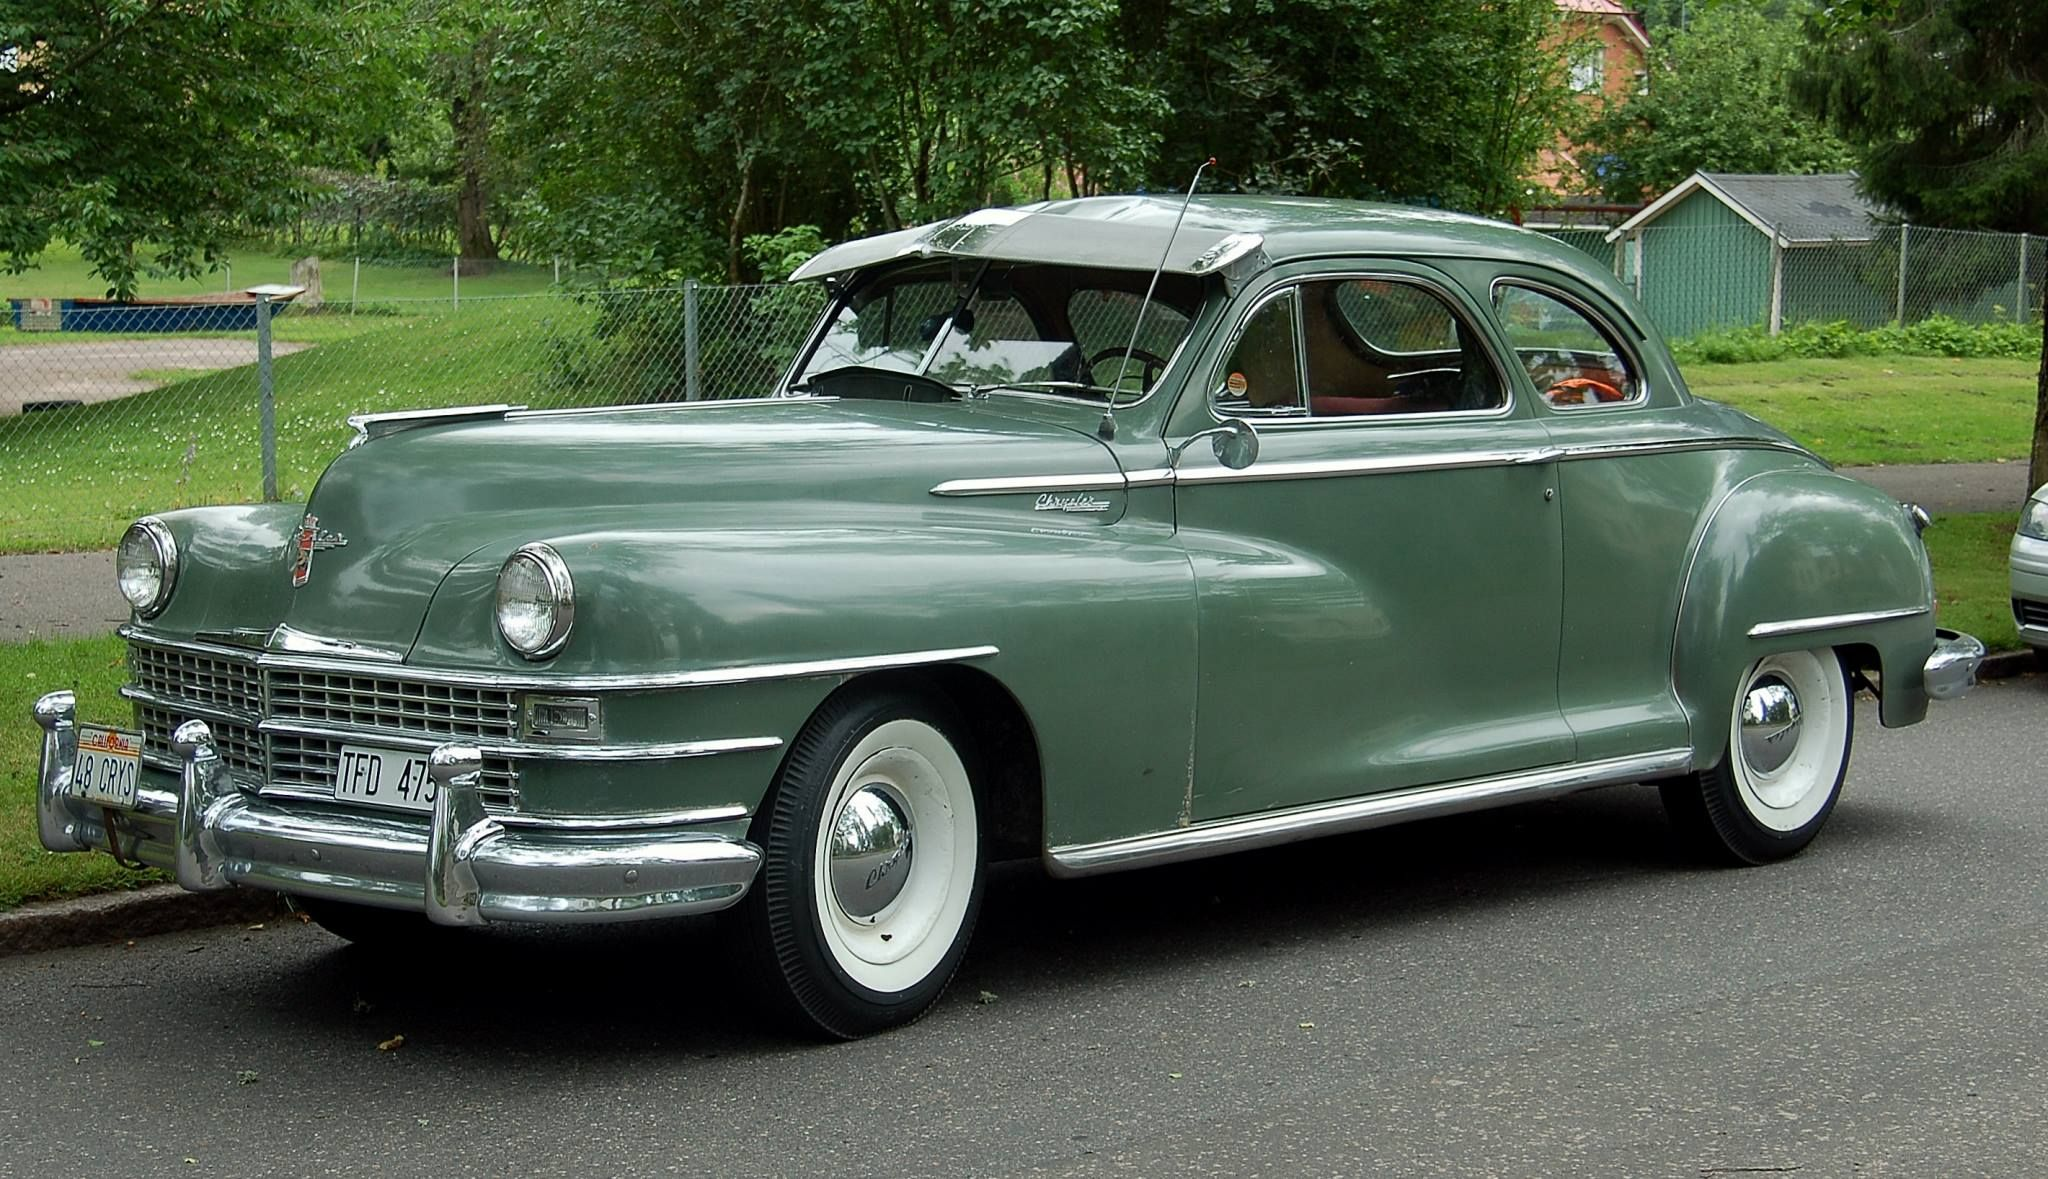 Chrysler Windsor 1948 | American Cars of the 30s and 40s ...